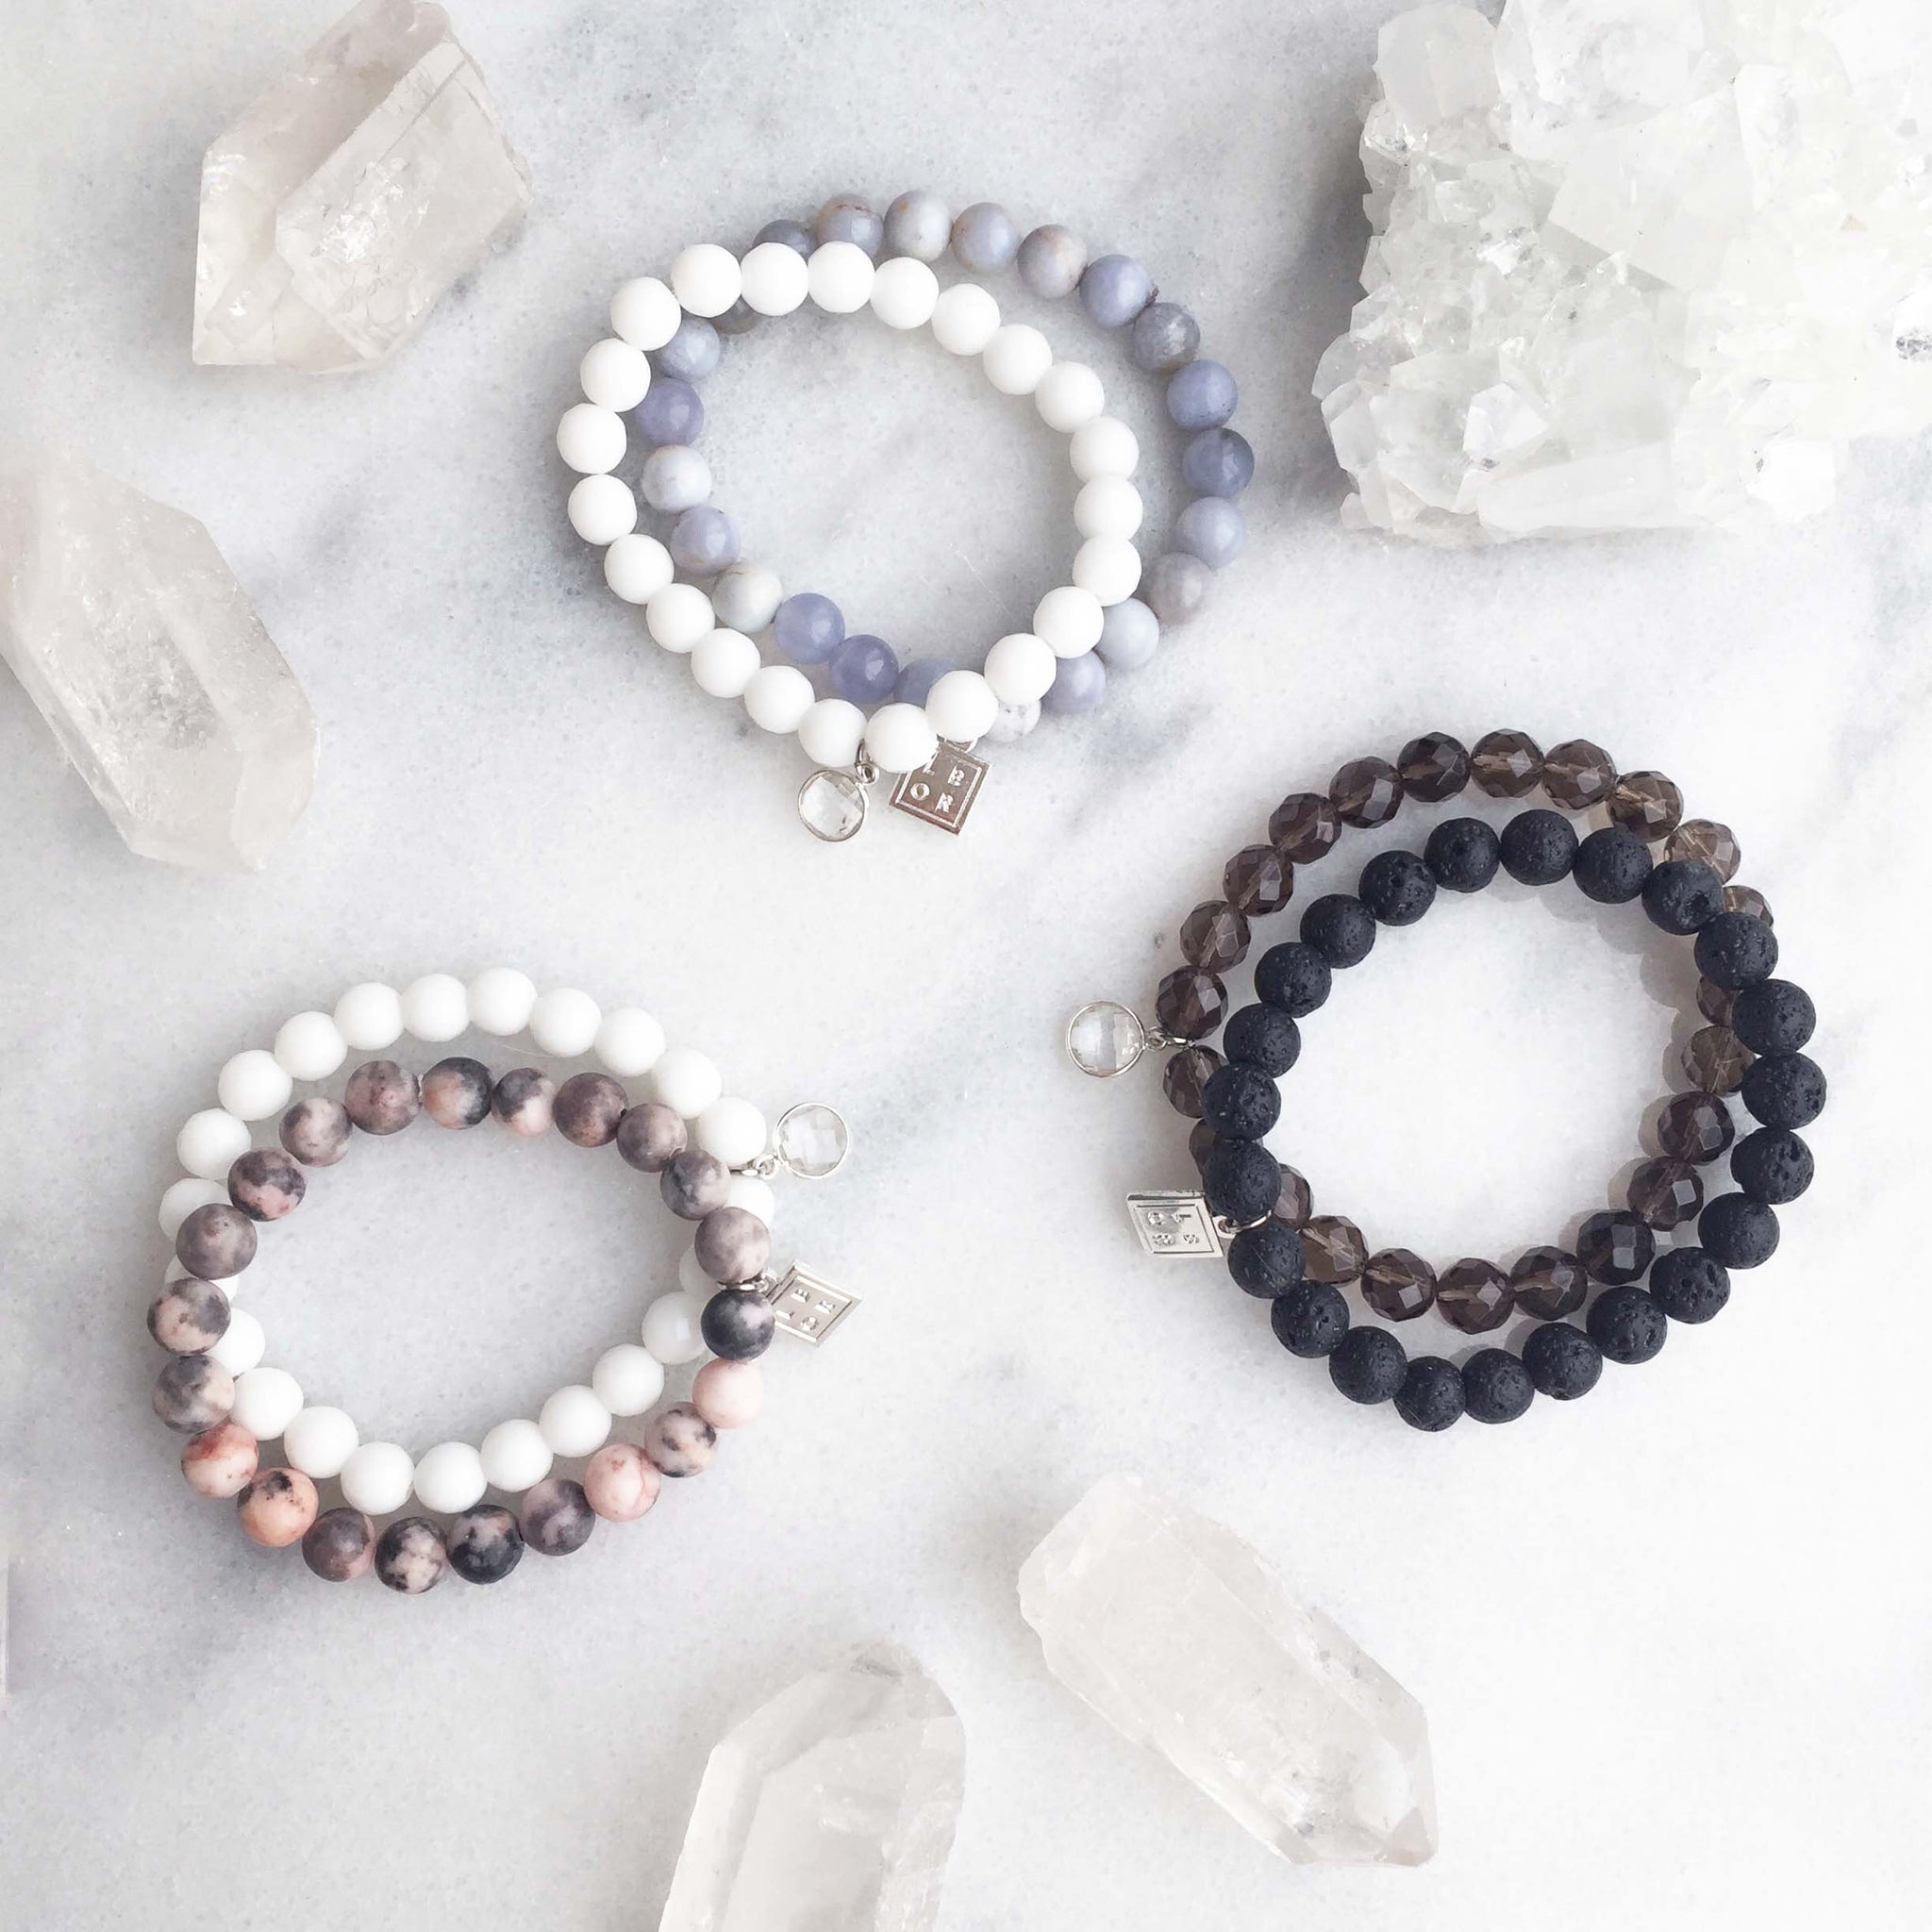 Best Ways to Wear Healing Crystals - Little Box of Rocks